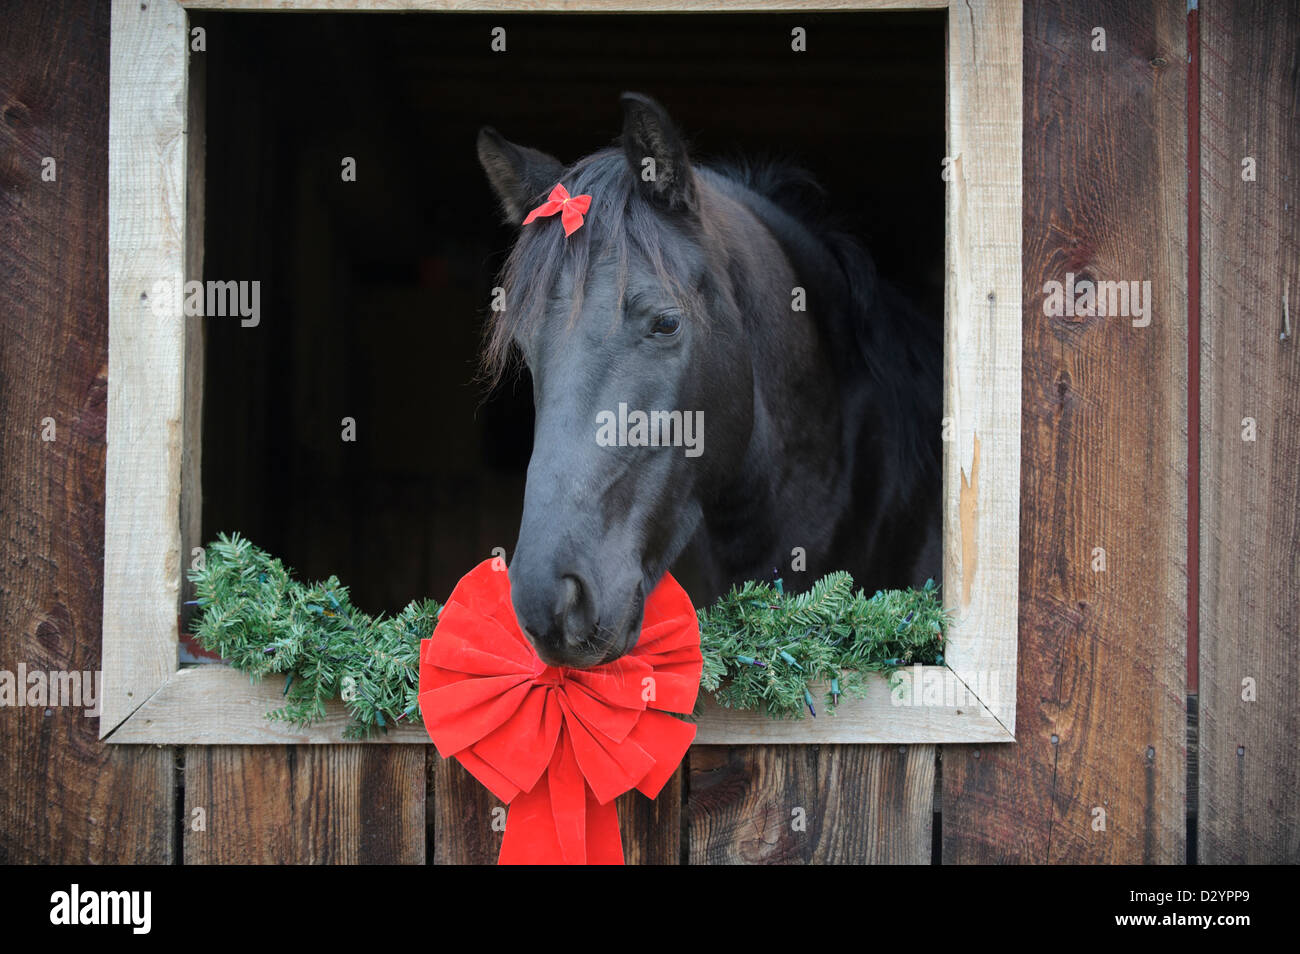 Horse Looking Out A Barn Window With Christmas Decorations Stock Photo Alamy